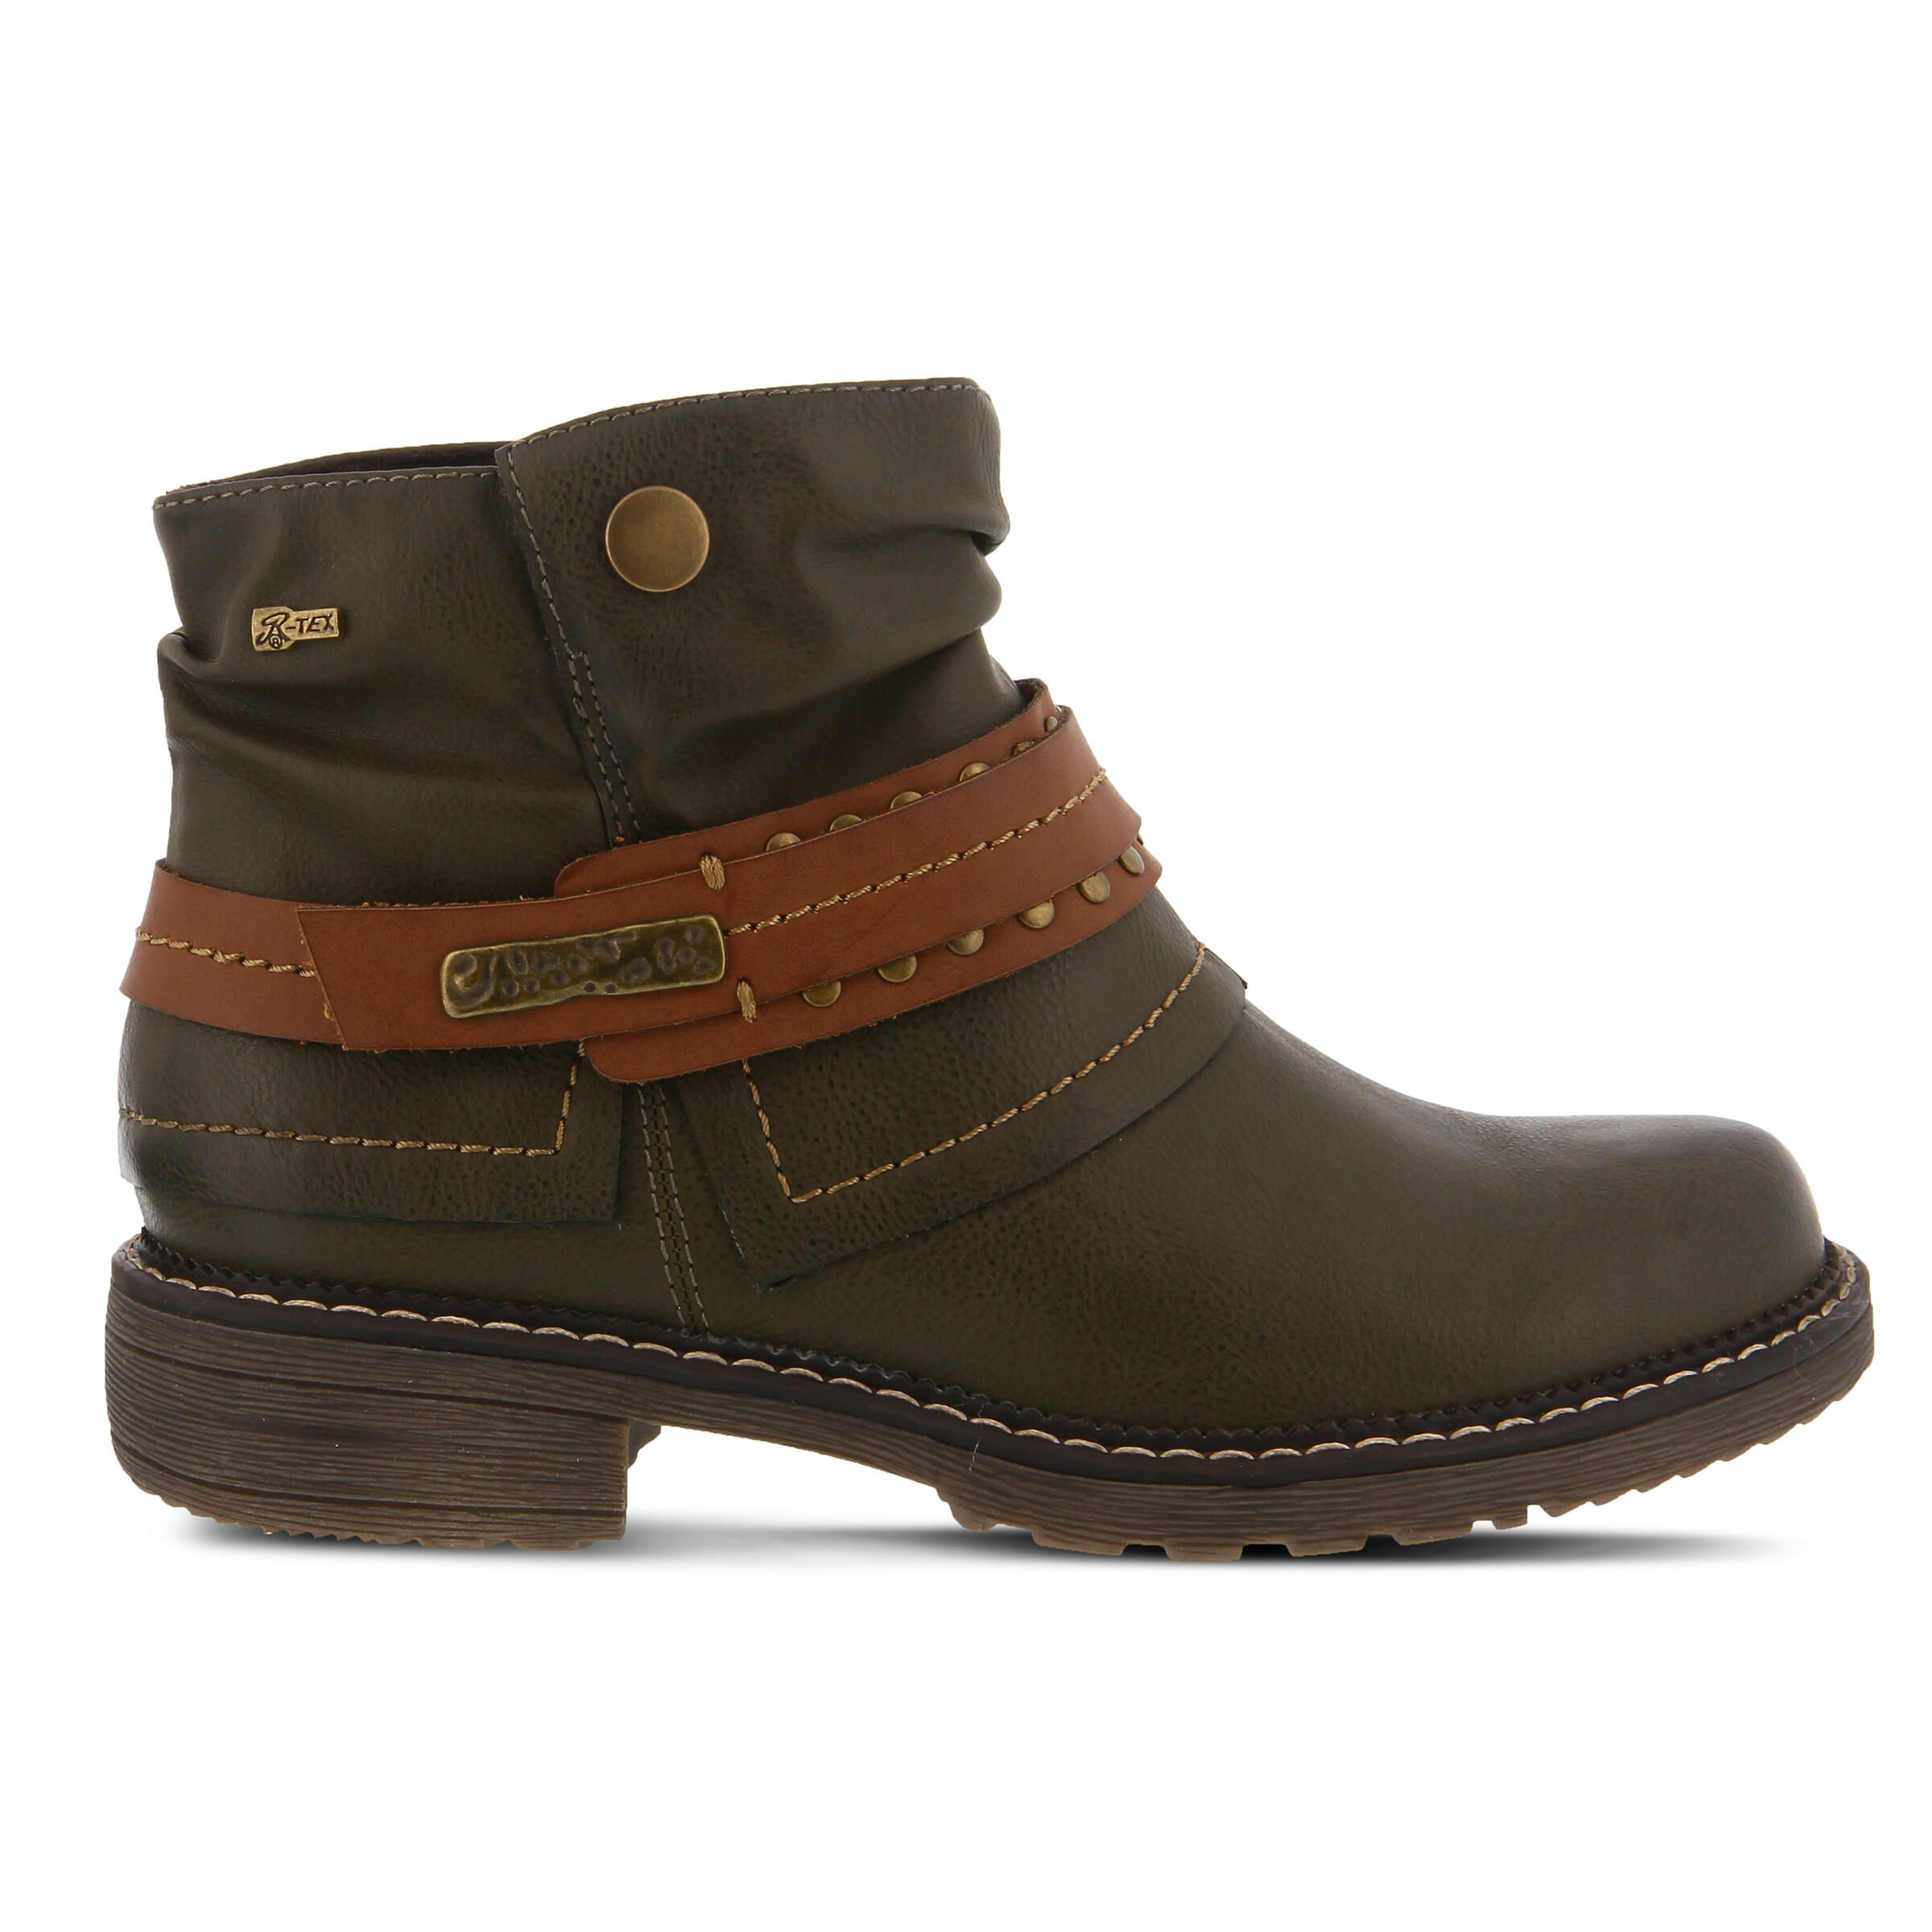 Women's SPRING STEP Murna Booties Olive Green